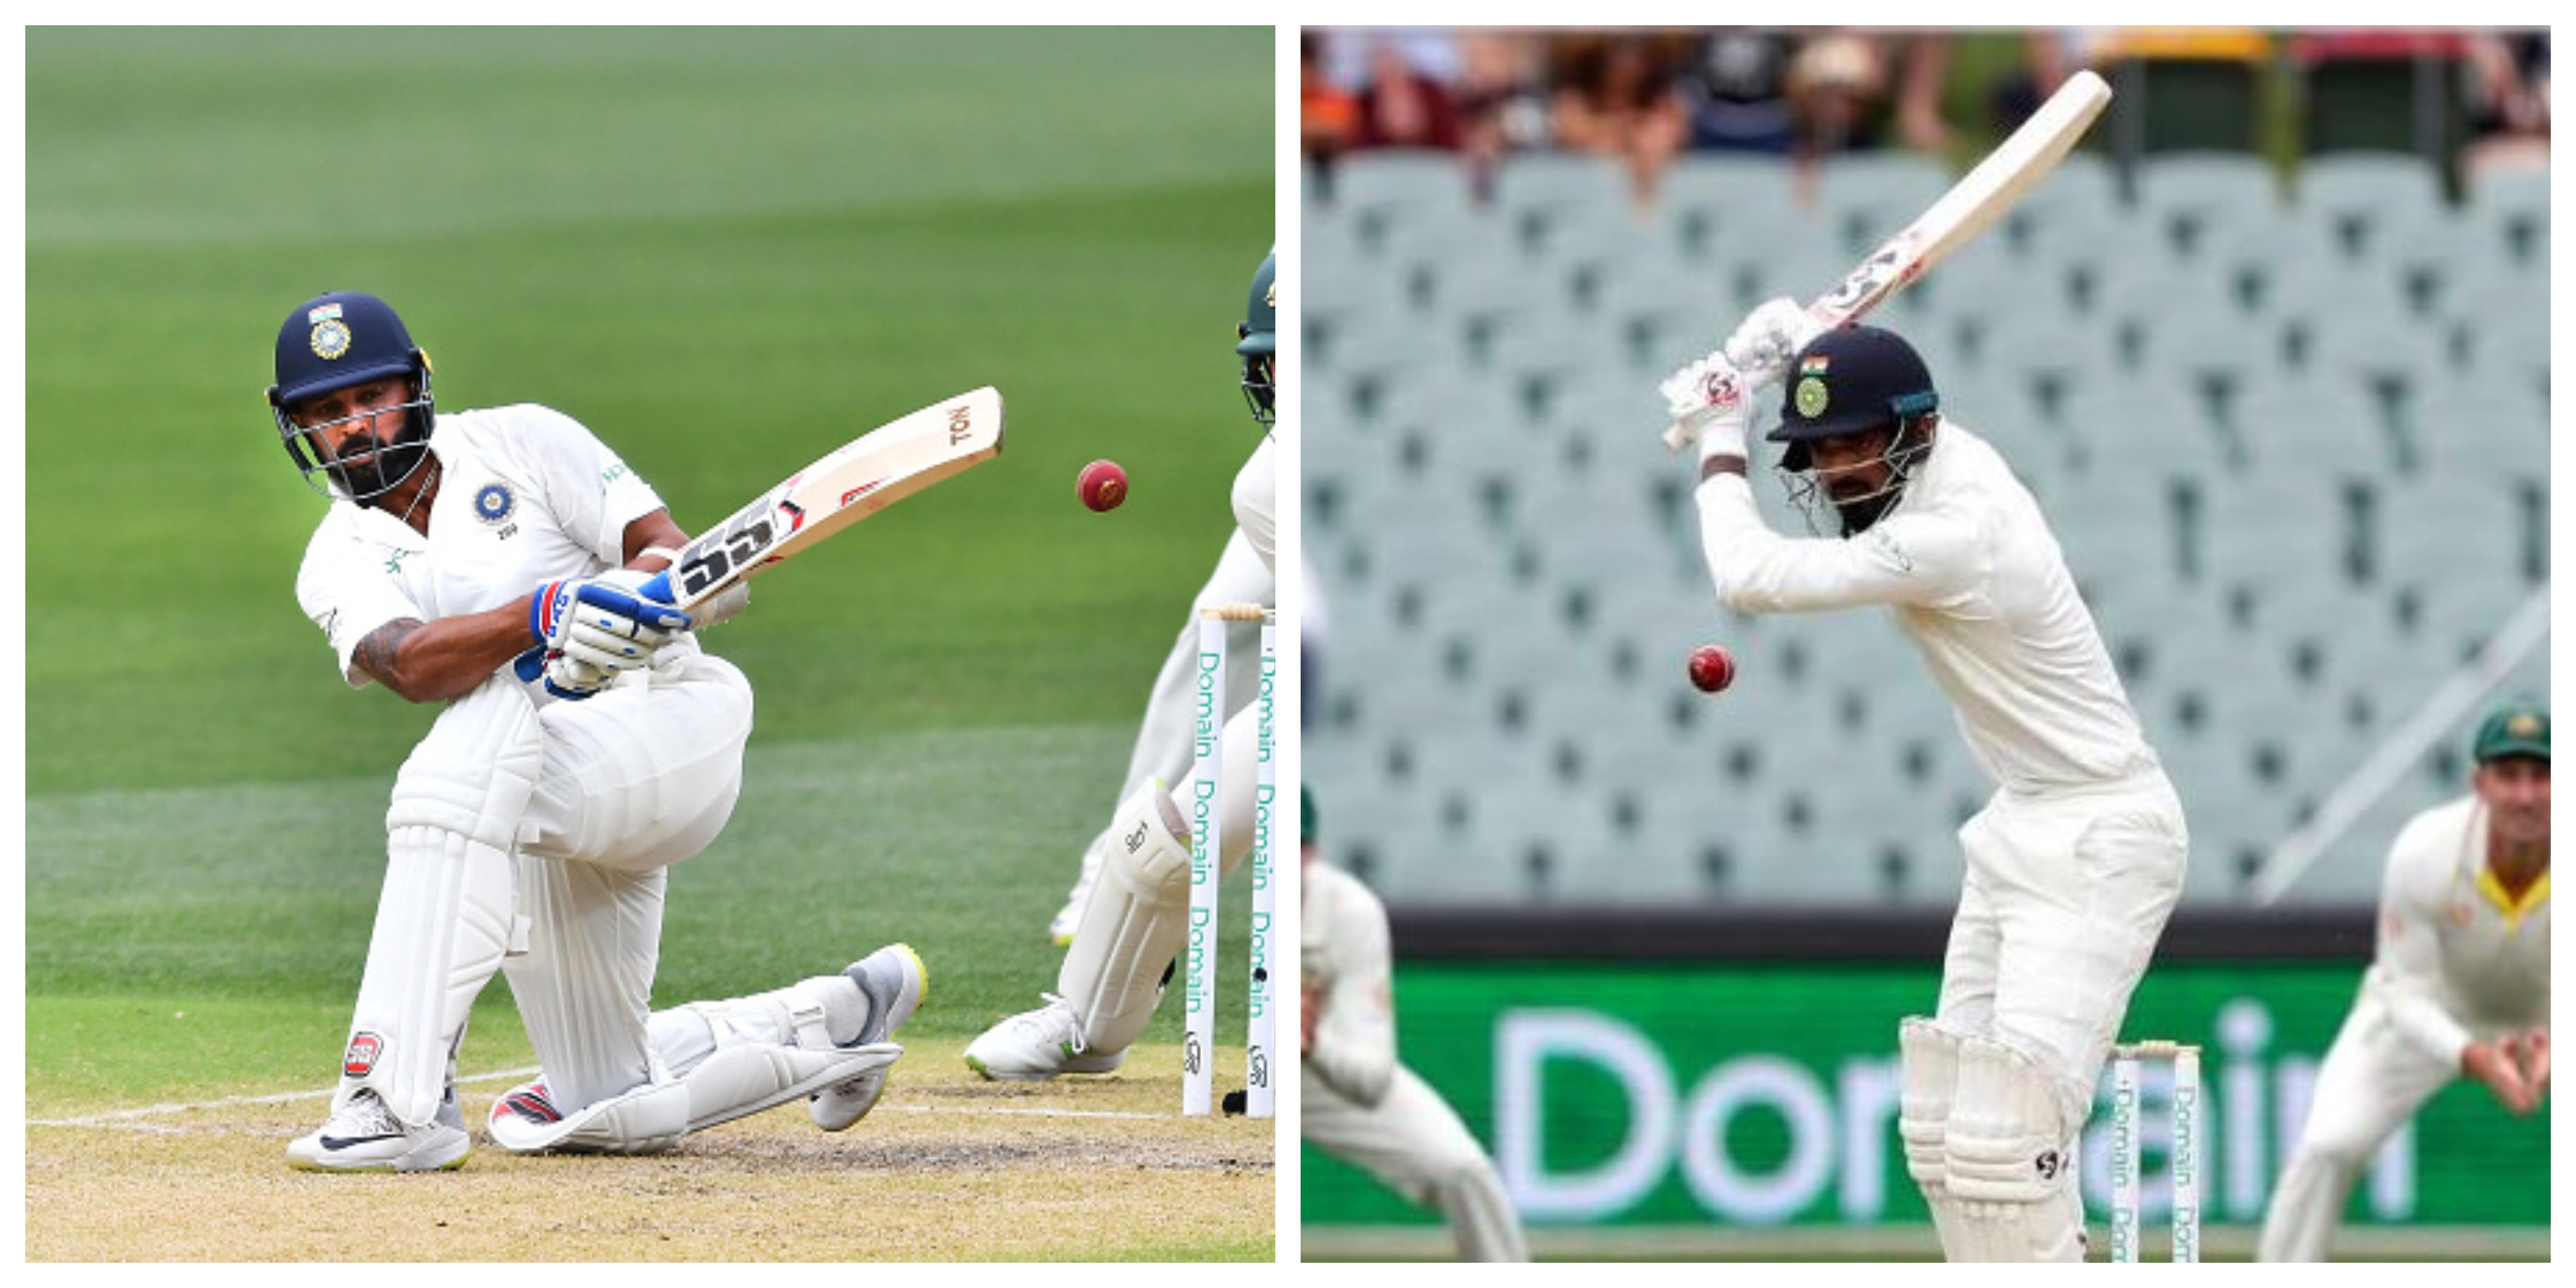 India will be hoping for a good start from KL Rahul and Murali Vijay